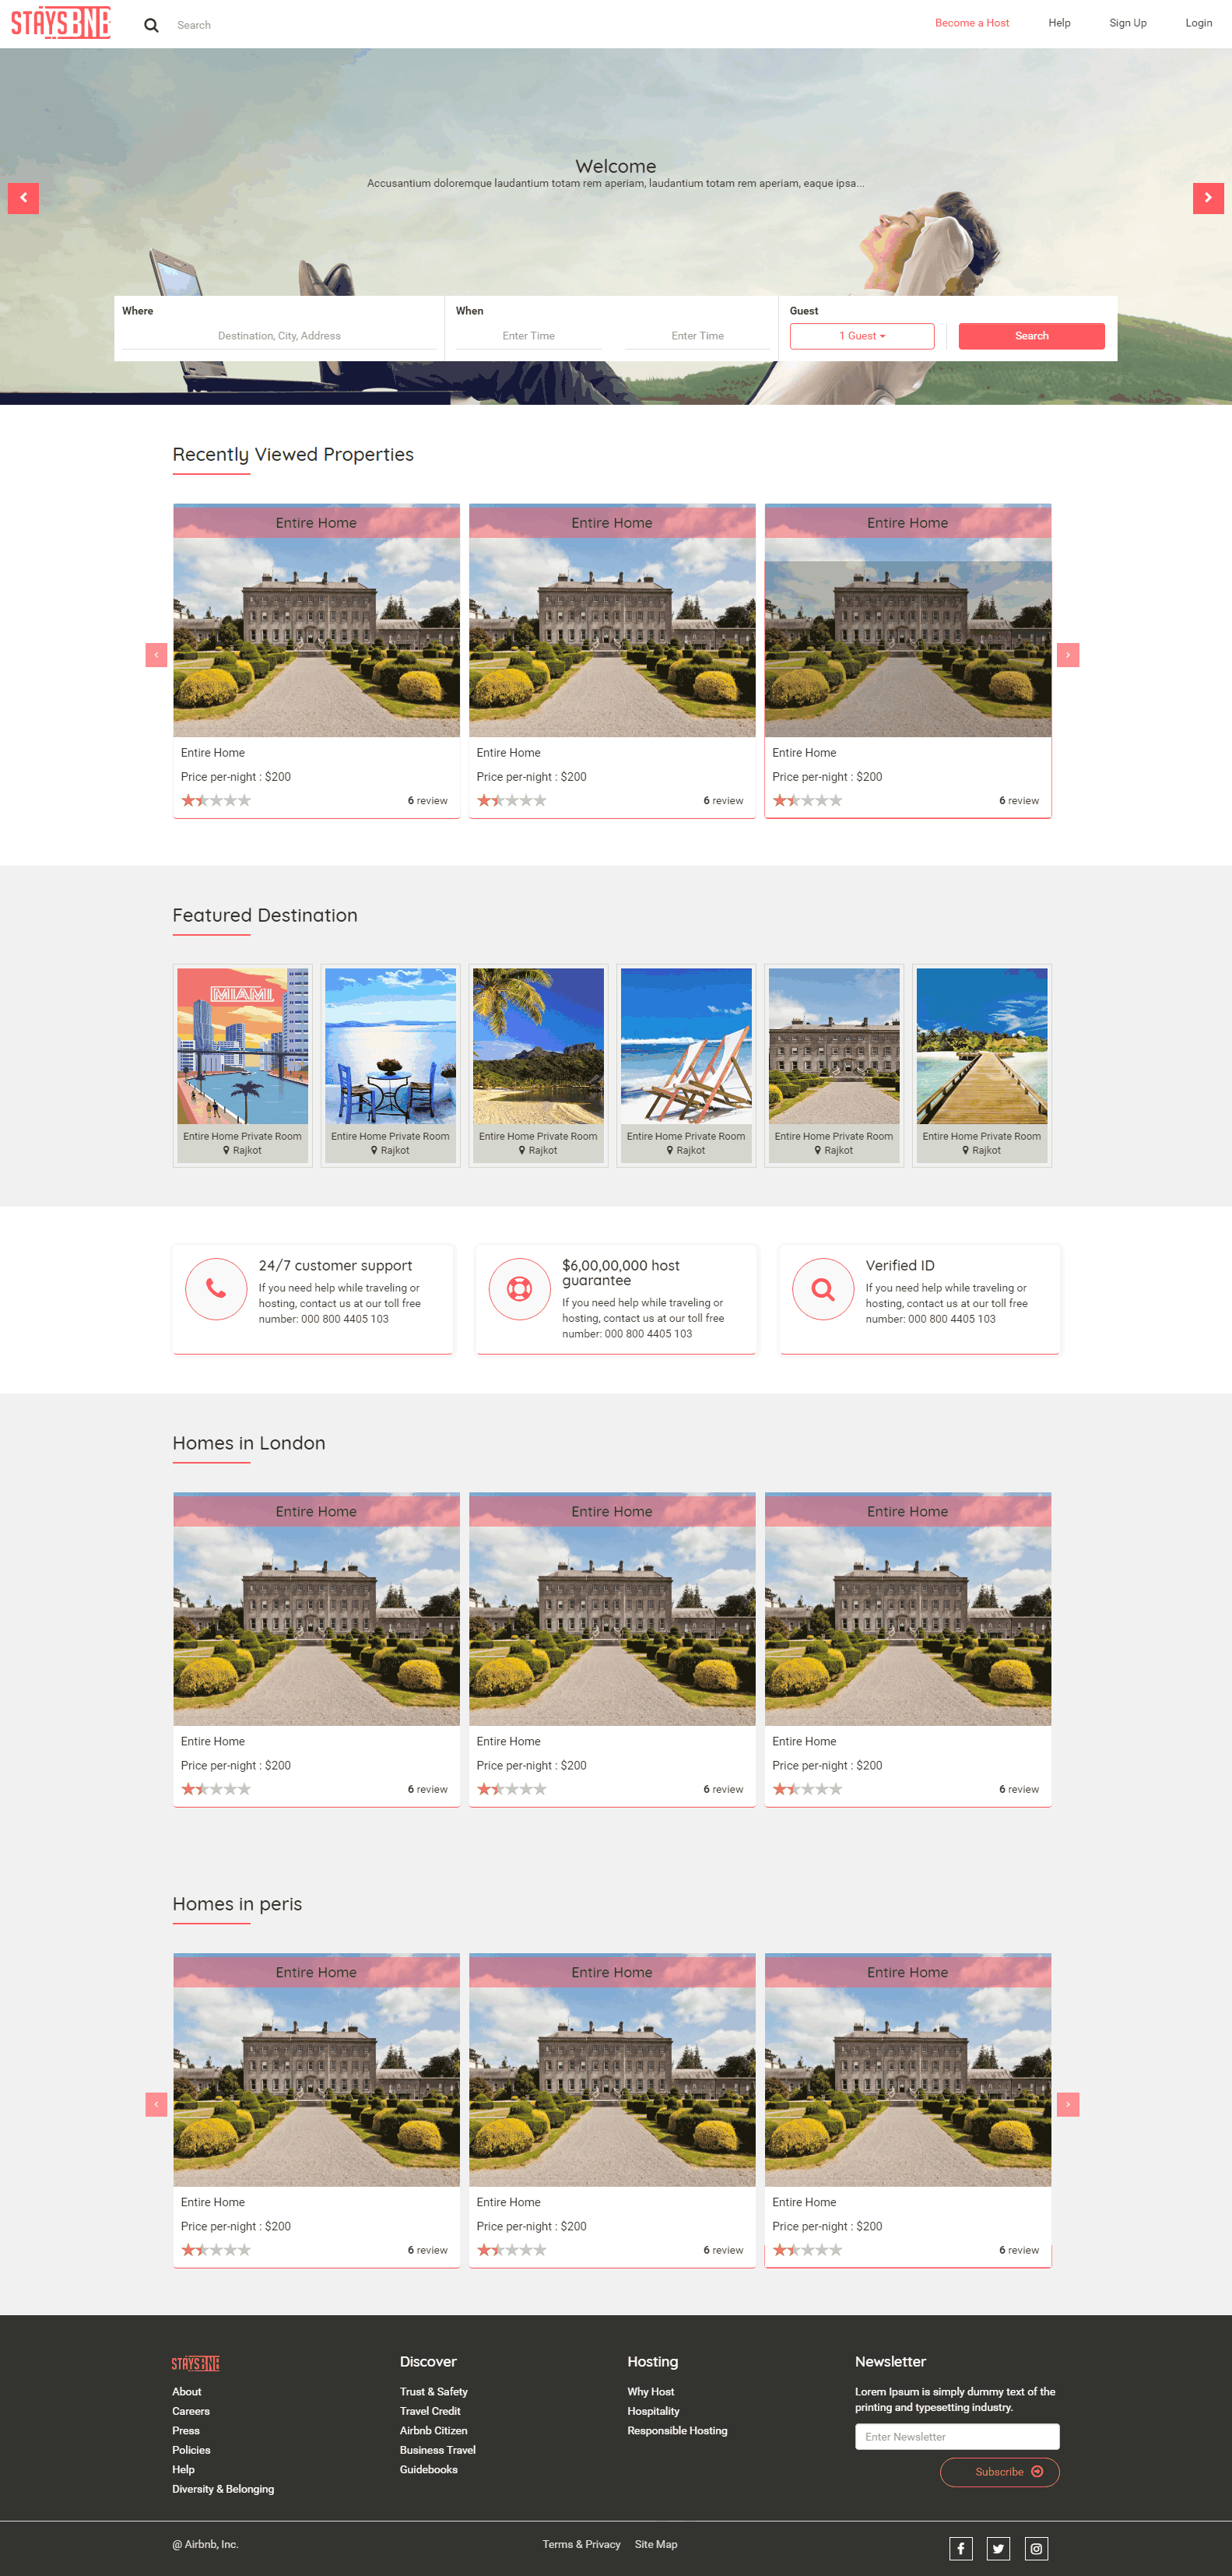 Airbnb Clone - StaysBnB Pricing, Features & Reviews 2019 - Free Demo